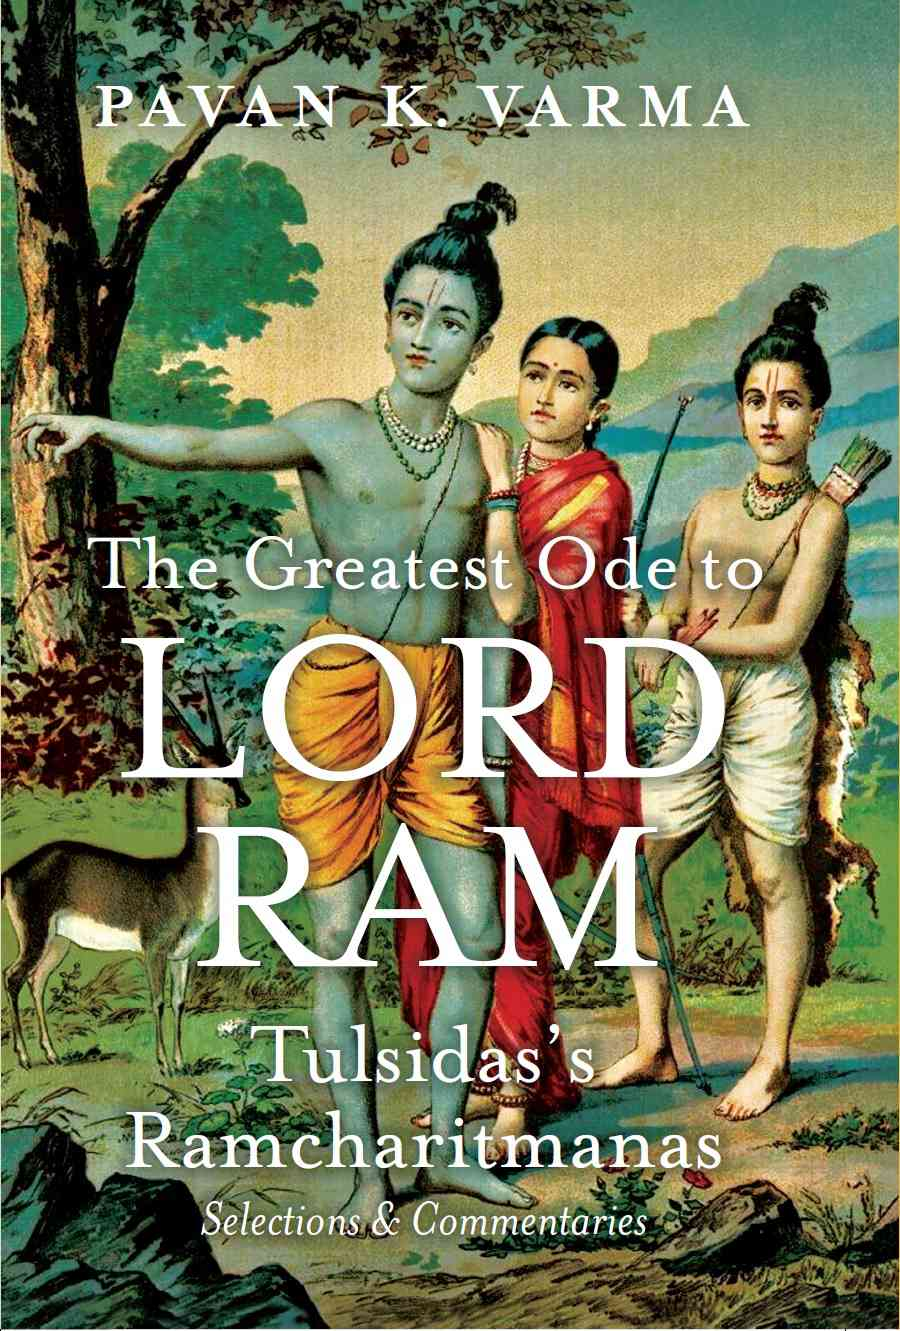 The Greatest Ode To Lord Ram: Tulsidas's Ramcharitmanas, Selections & Commentaries